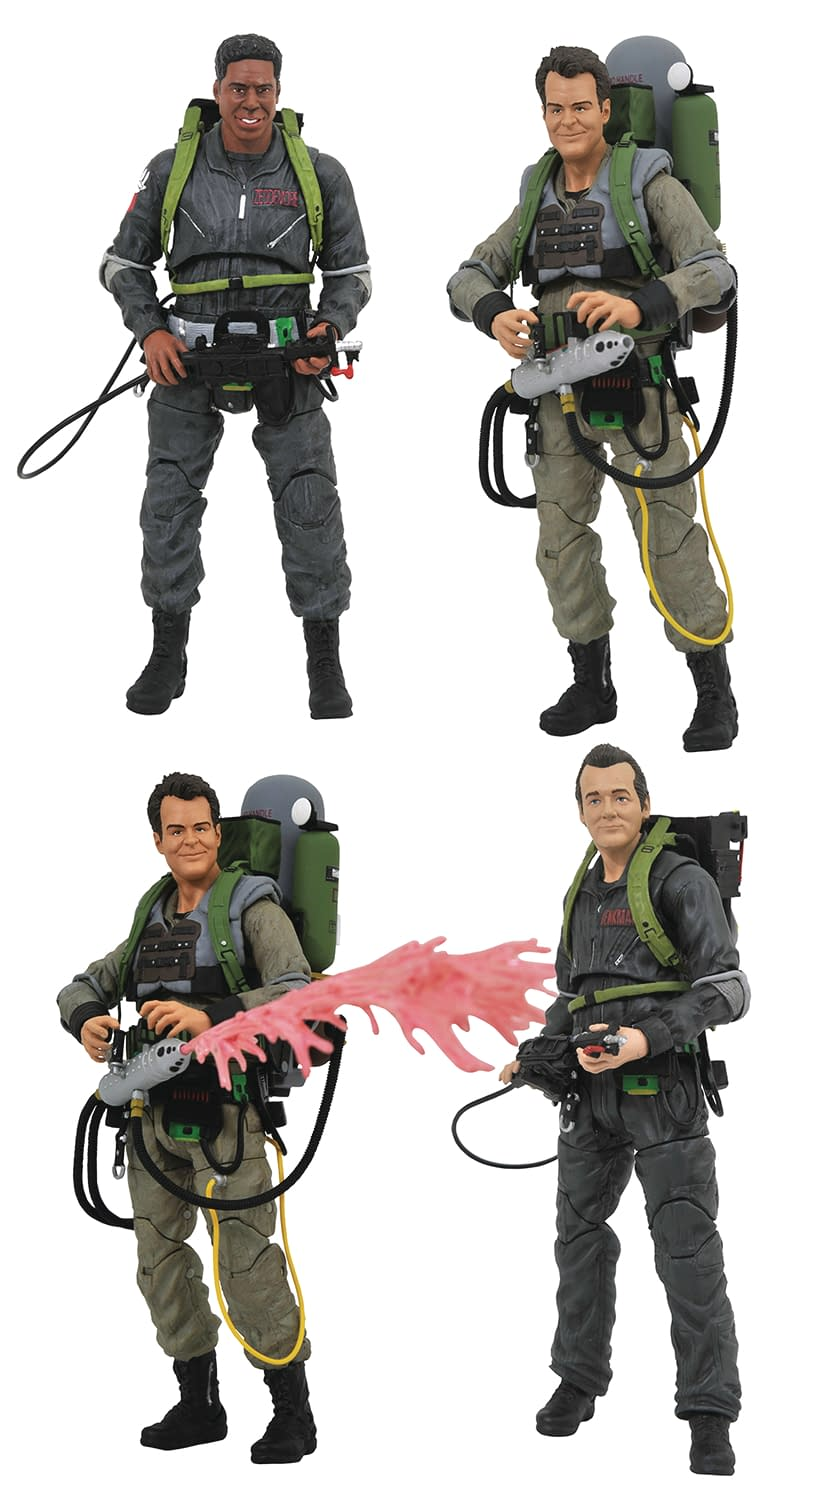 Diamond Select Toys in August: Arrow, Ghostbusters, Pacific Rim, and More